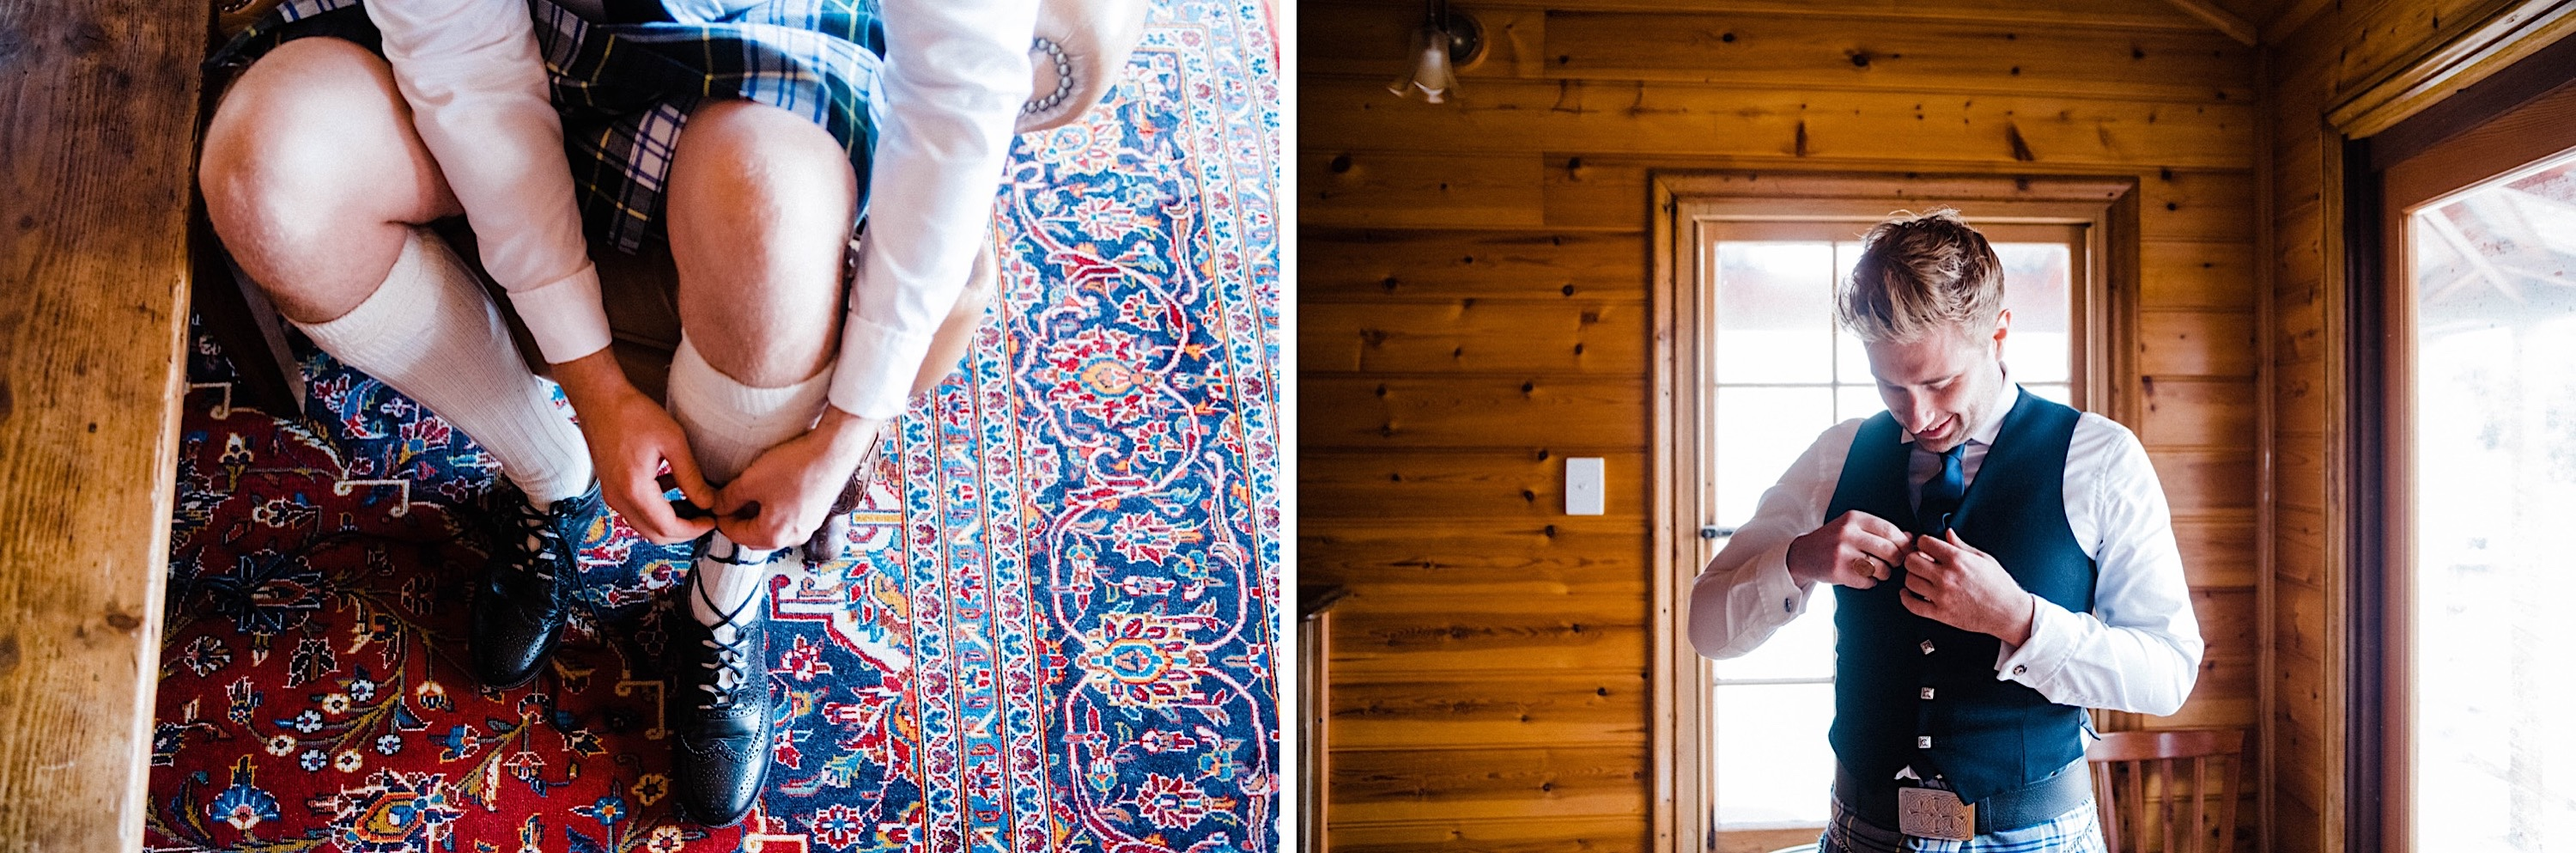 Two photos side-by-side. On the left, the groom ties up his Scottish shoes, on the right, he buttons up his waistcoat.